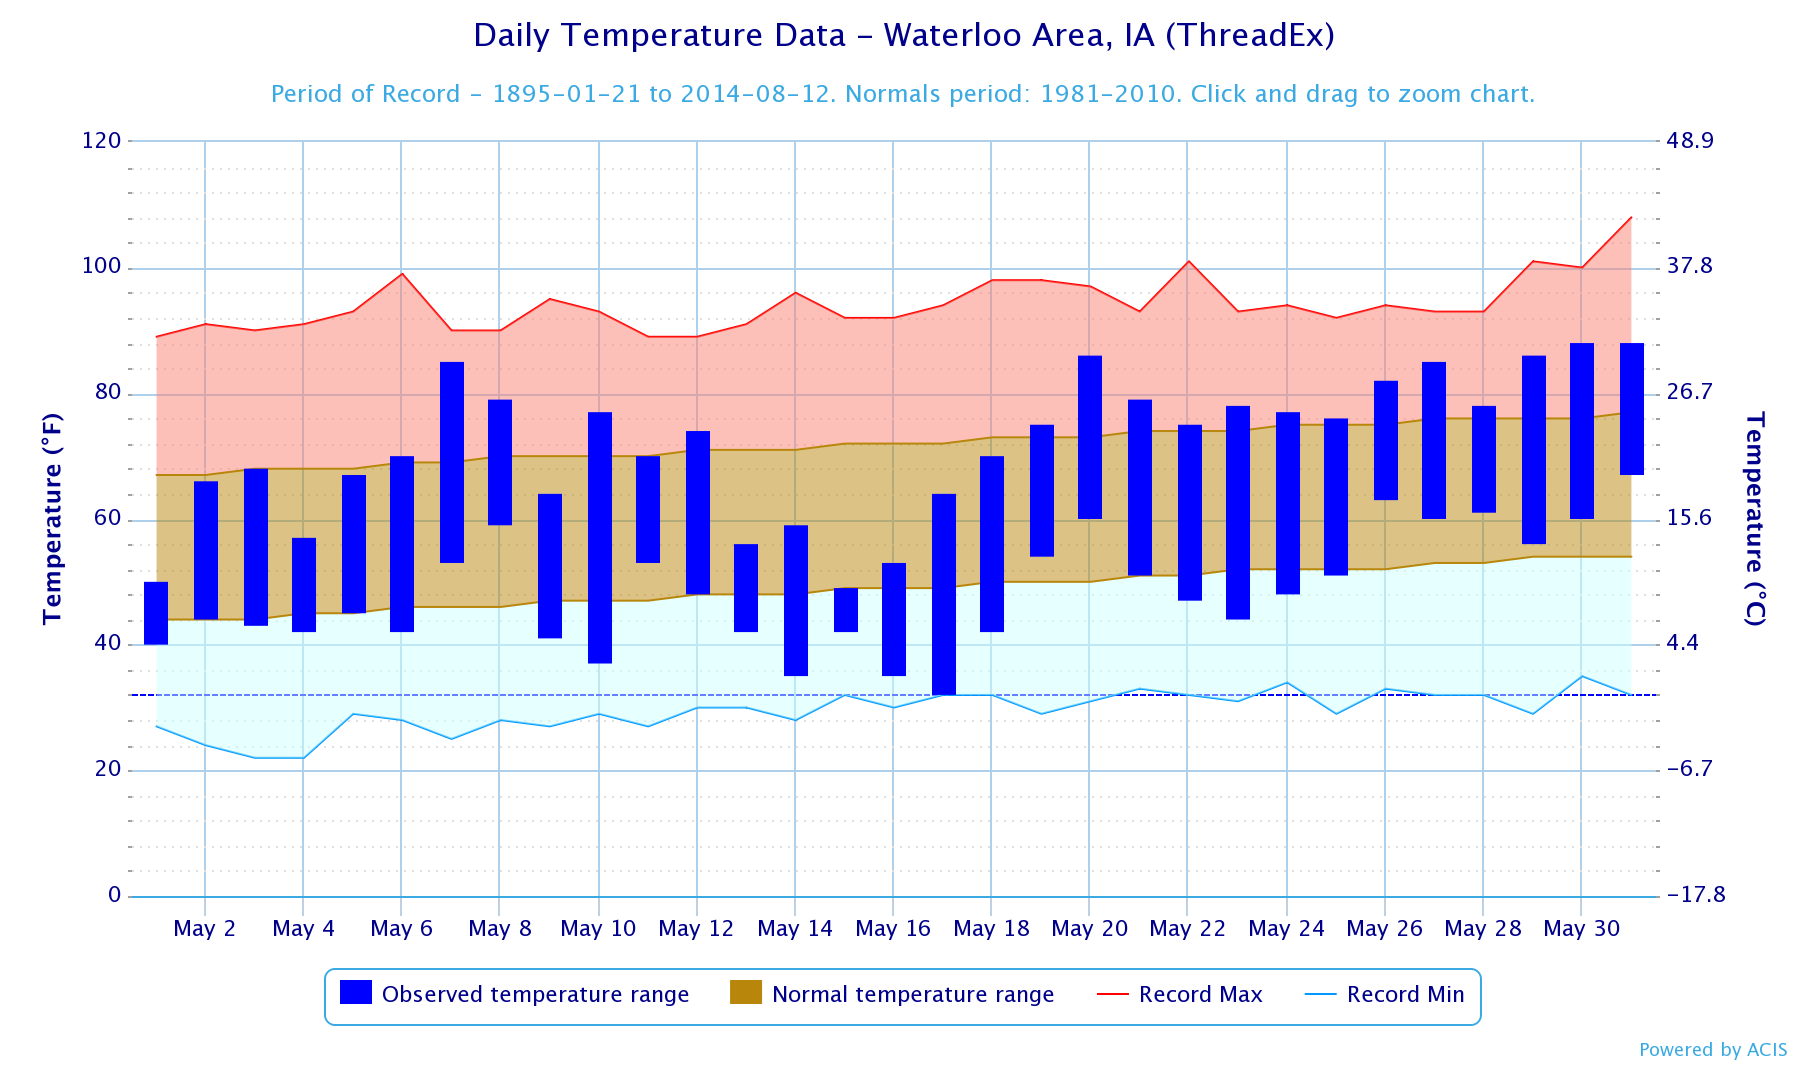 Figure 3: Daily Temperature Trend at Waterloo, Iowa during the month of May 2014. The temperature trend during the first half of the month shows sharp contrasts before leveling out by the end of the month.